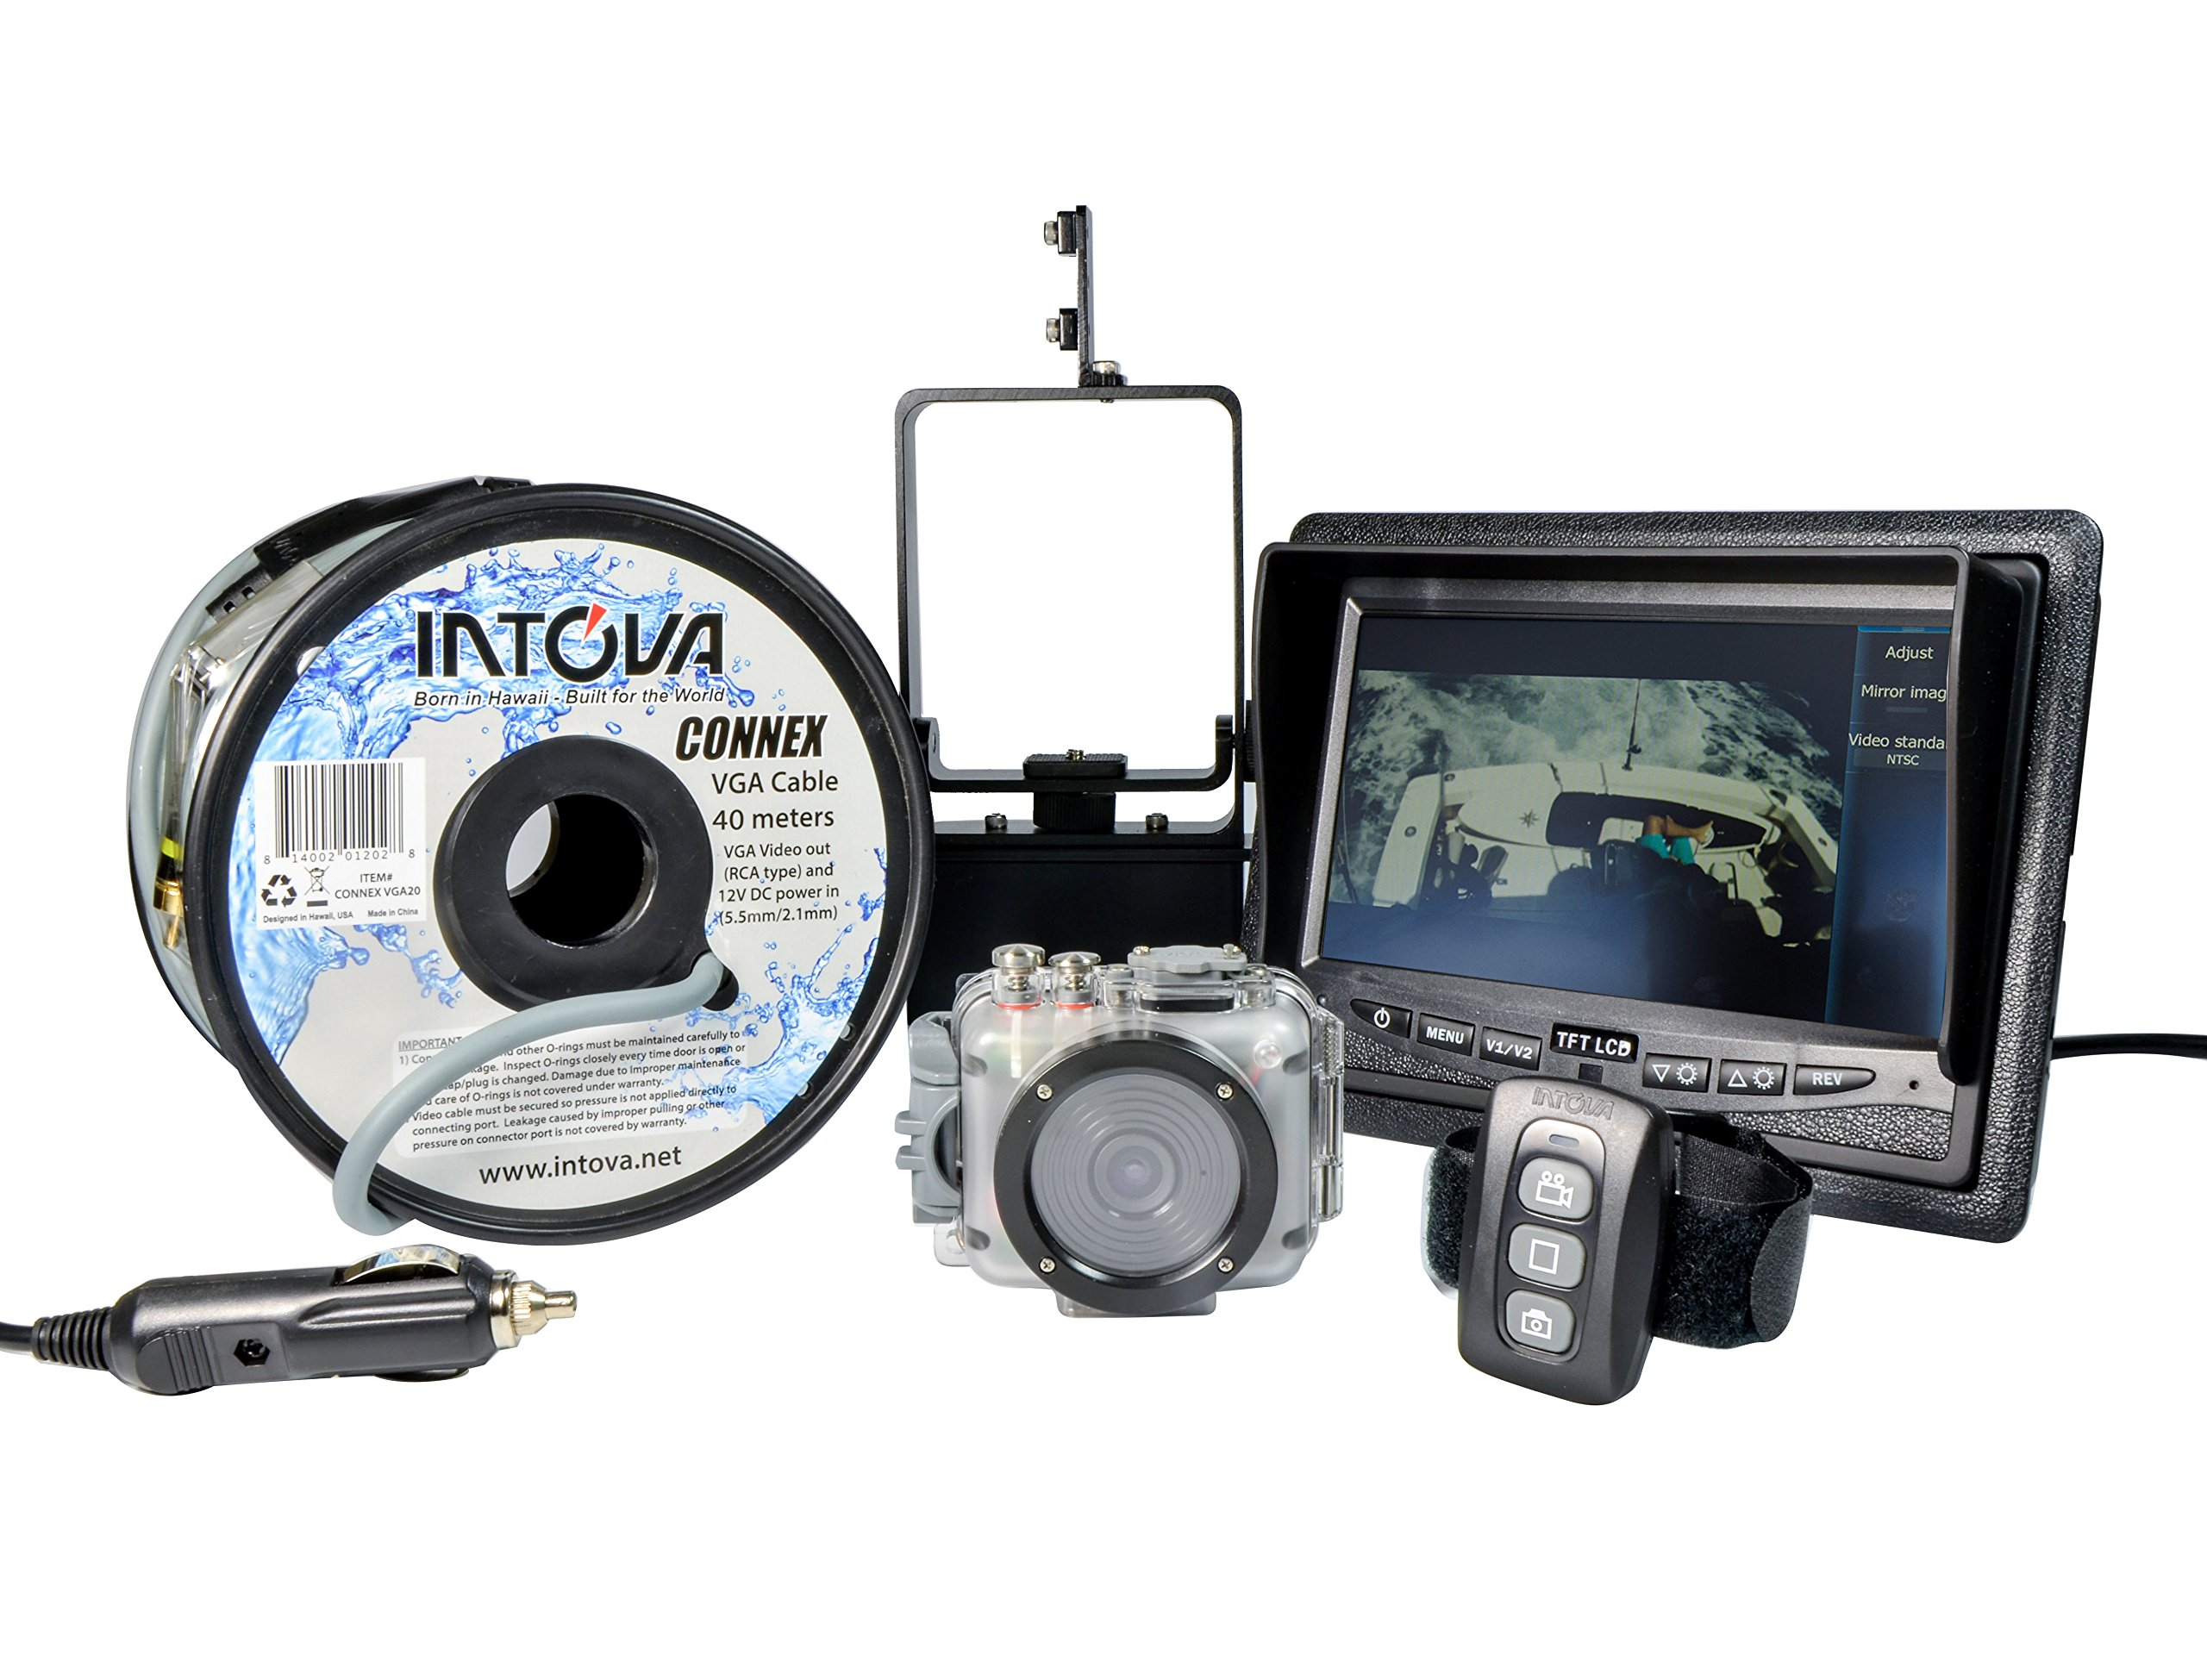 Intova Connex Underwater HD Video Camera Bundle with Color LCD Monitor, Cable, Remote Control, and Mounting Bracket